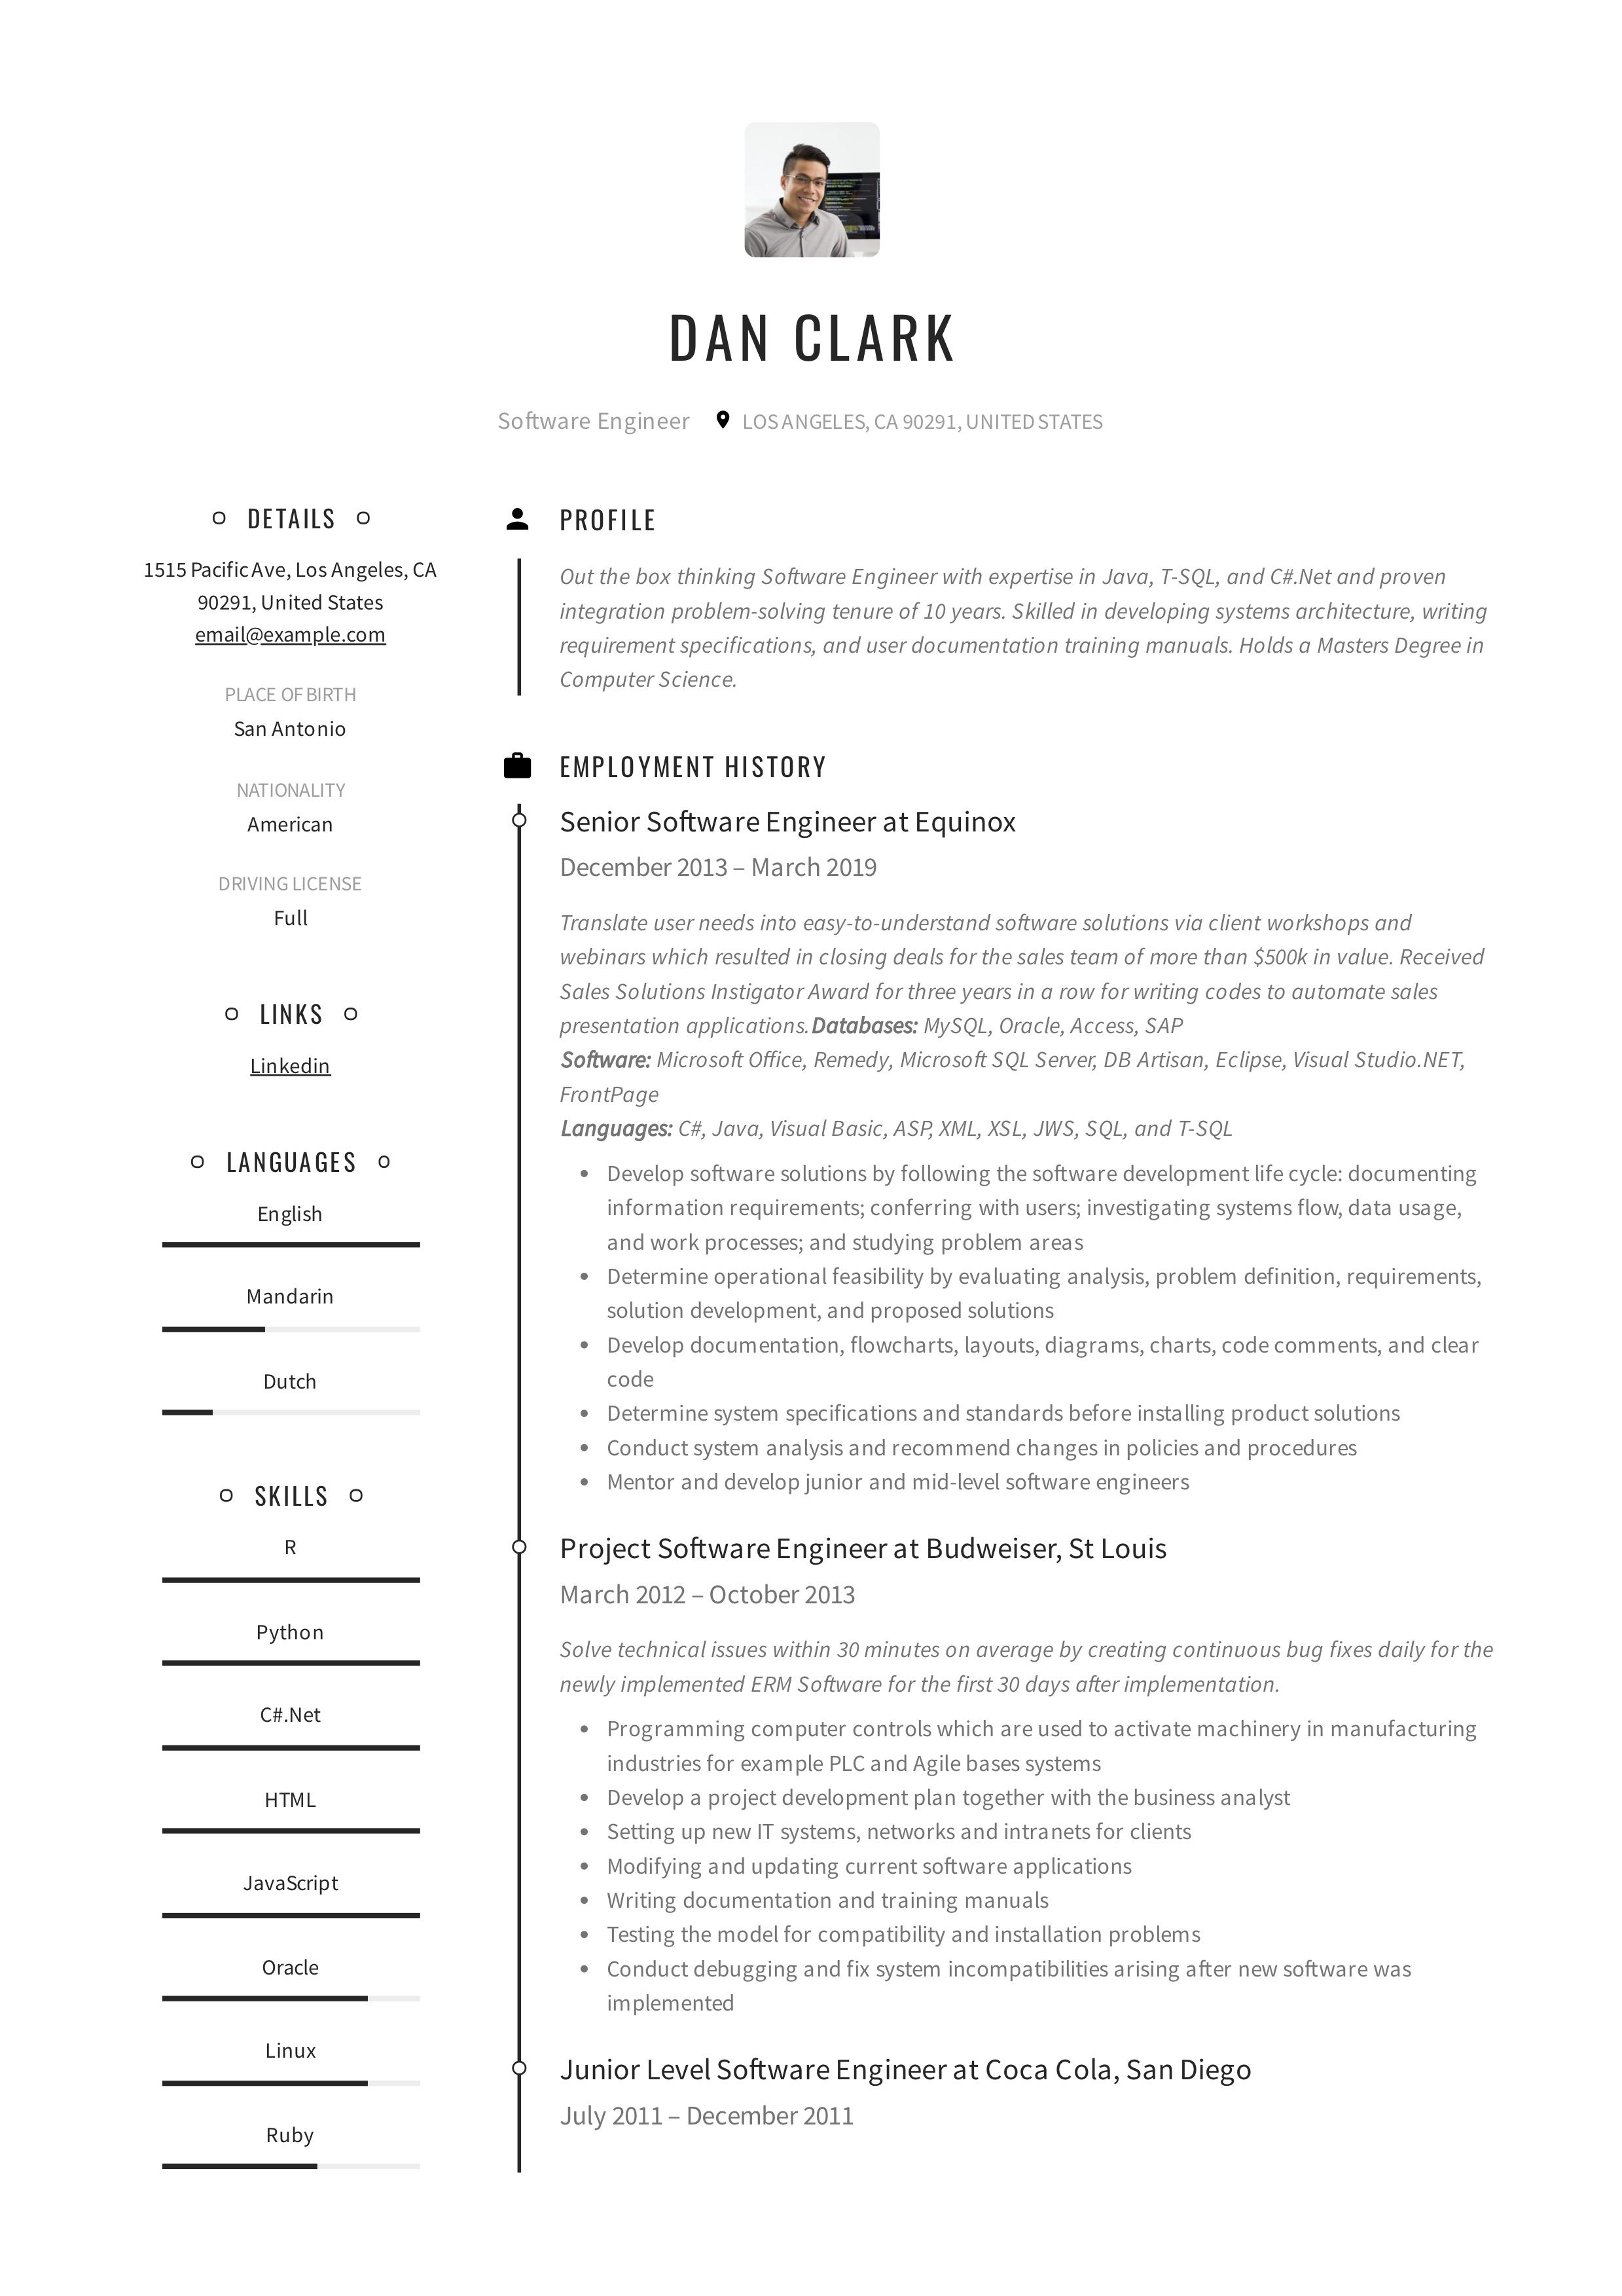 Software Engineer Resume Writing Guide In 2020 Resume Templates